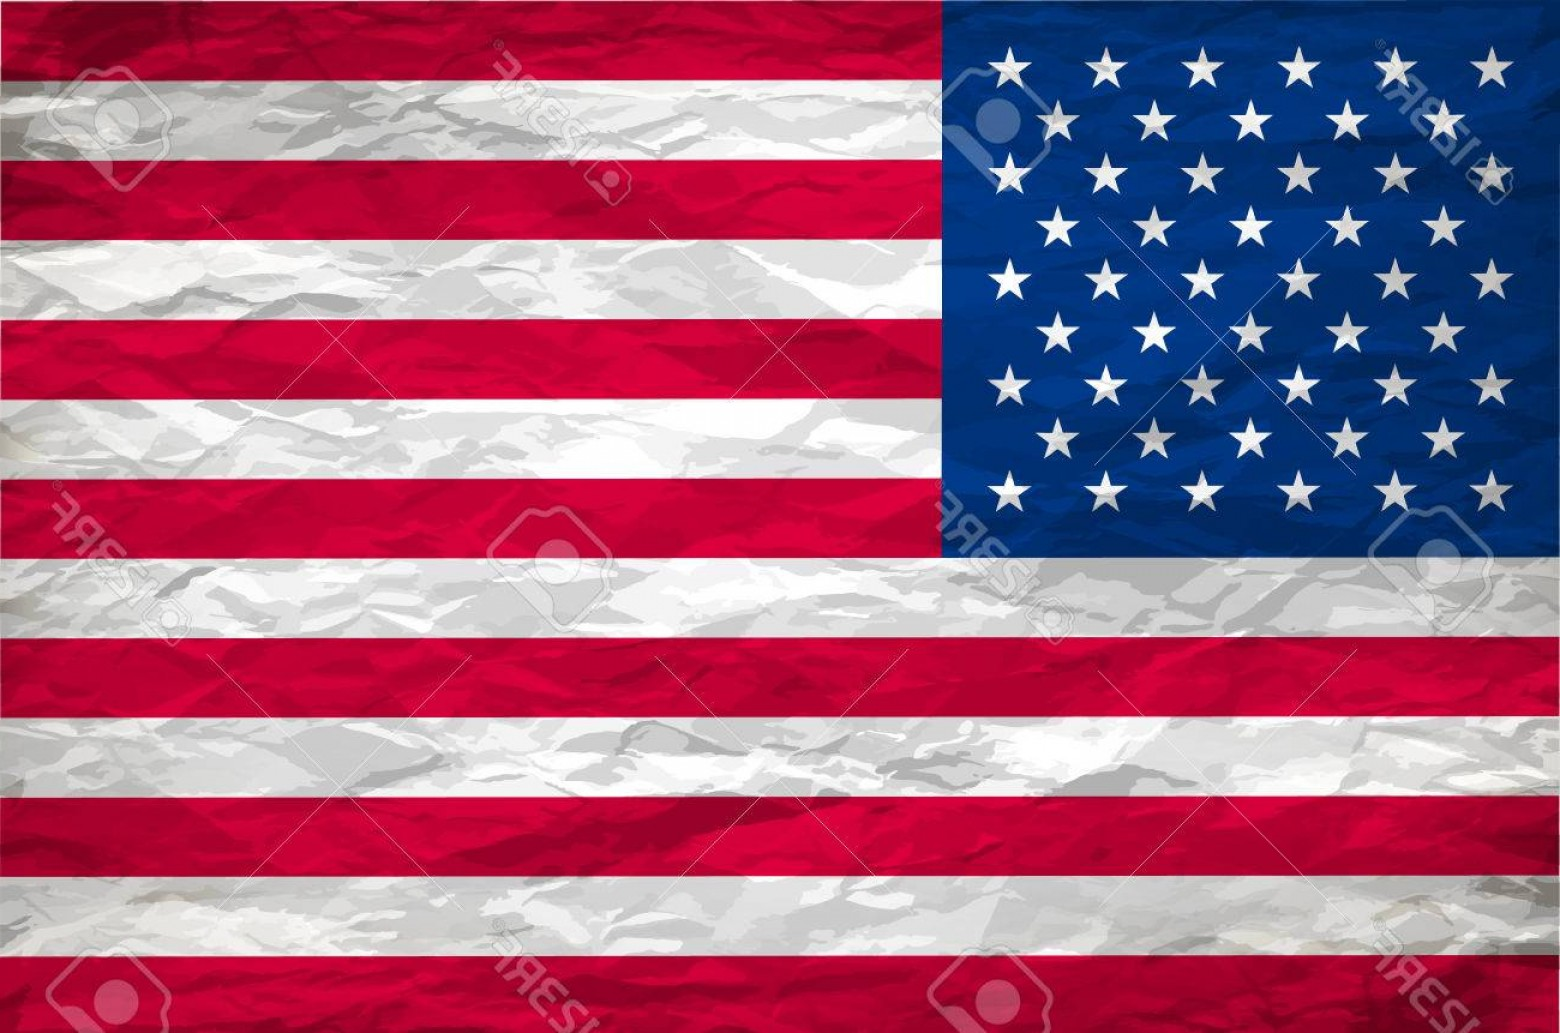 Rustic American Flag Vector: Photostock Vector The Usa Flag Painted On White Paper With Backgrond Vector Art